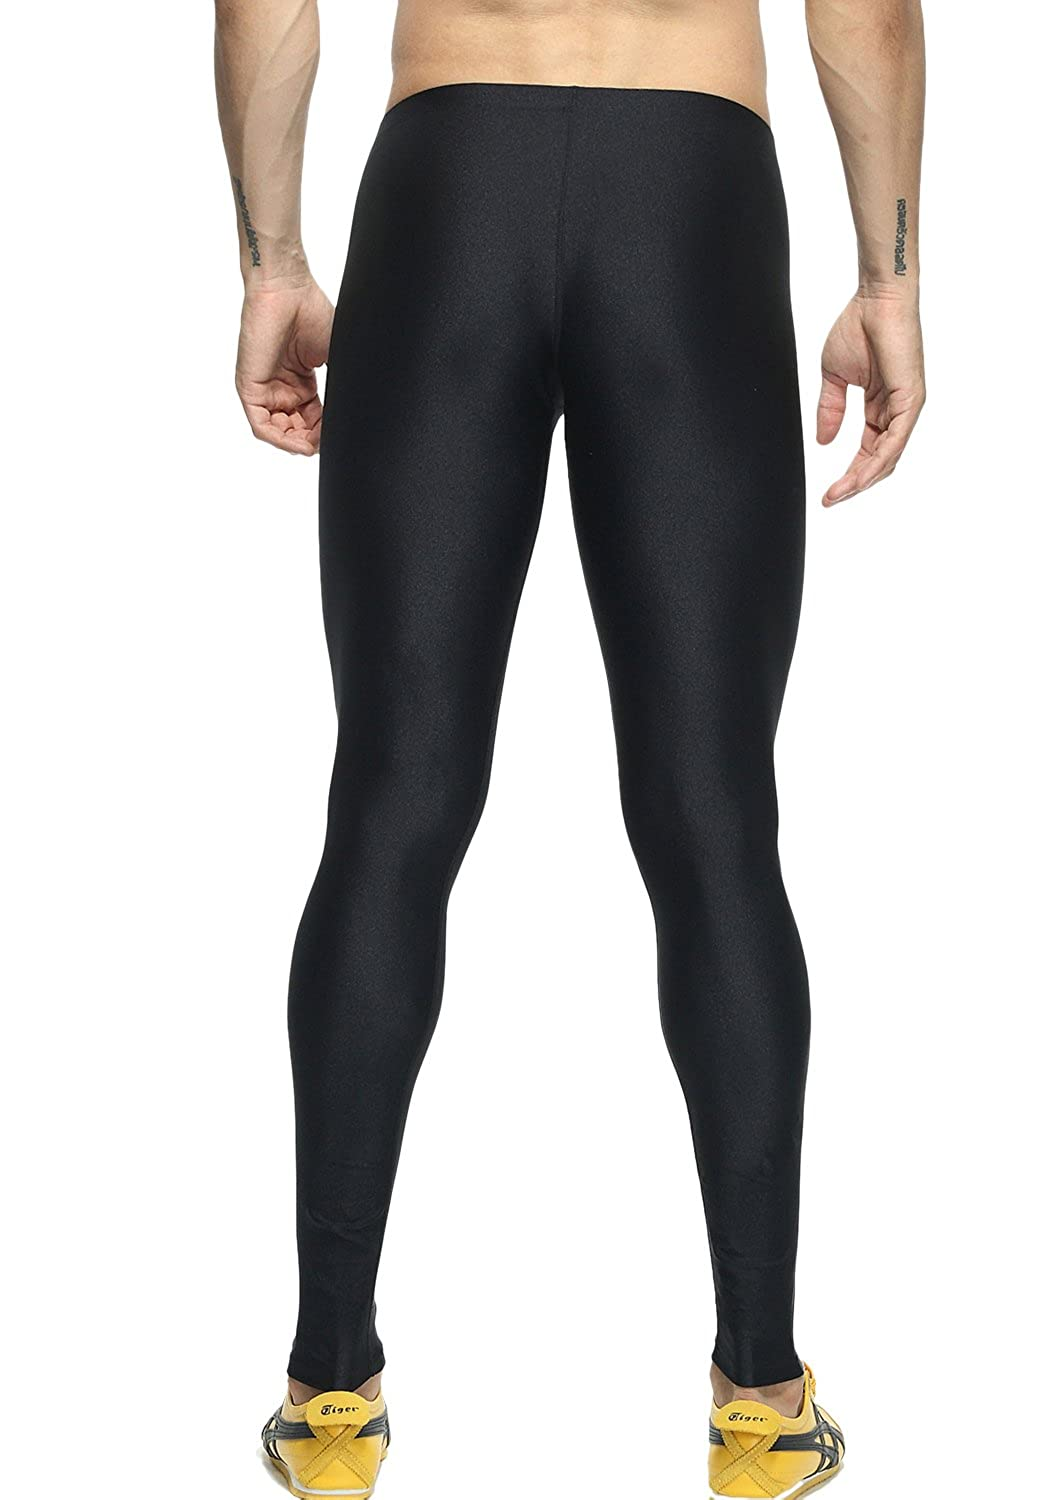 Minaso Mens Sports Tight Leggings for Gym Workout Running Tights